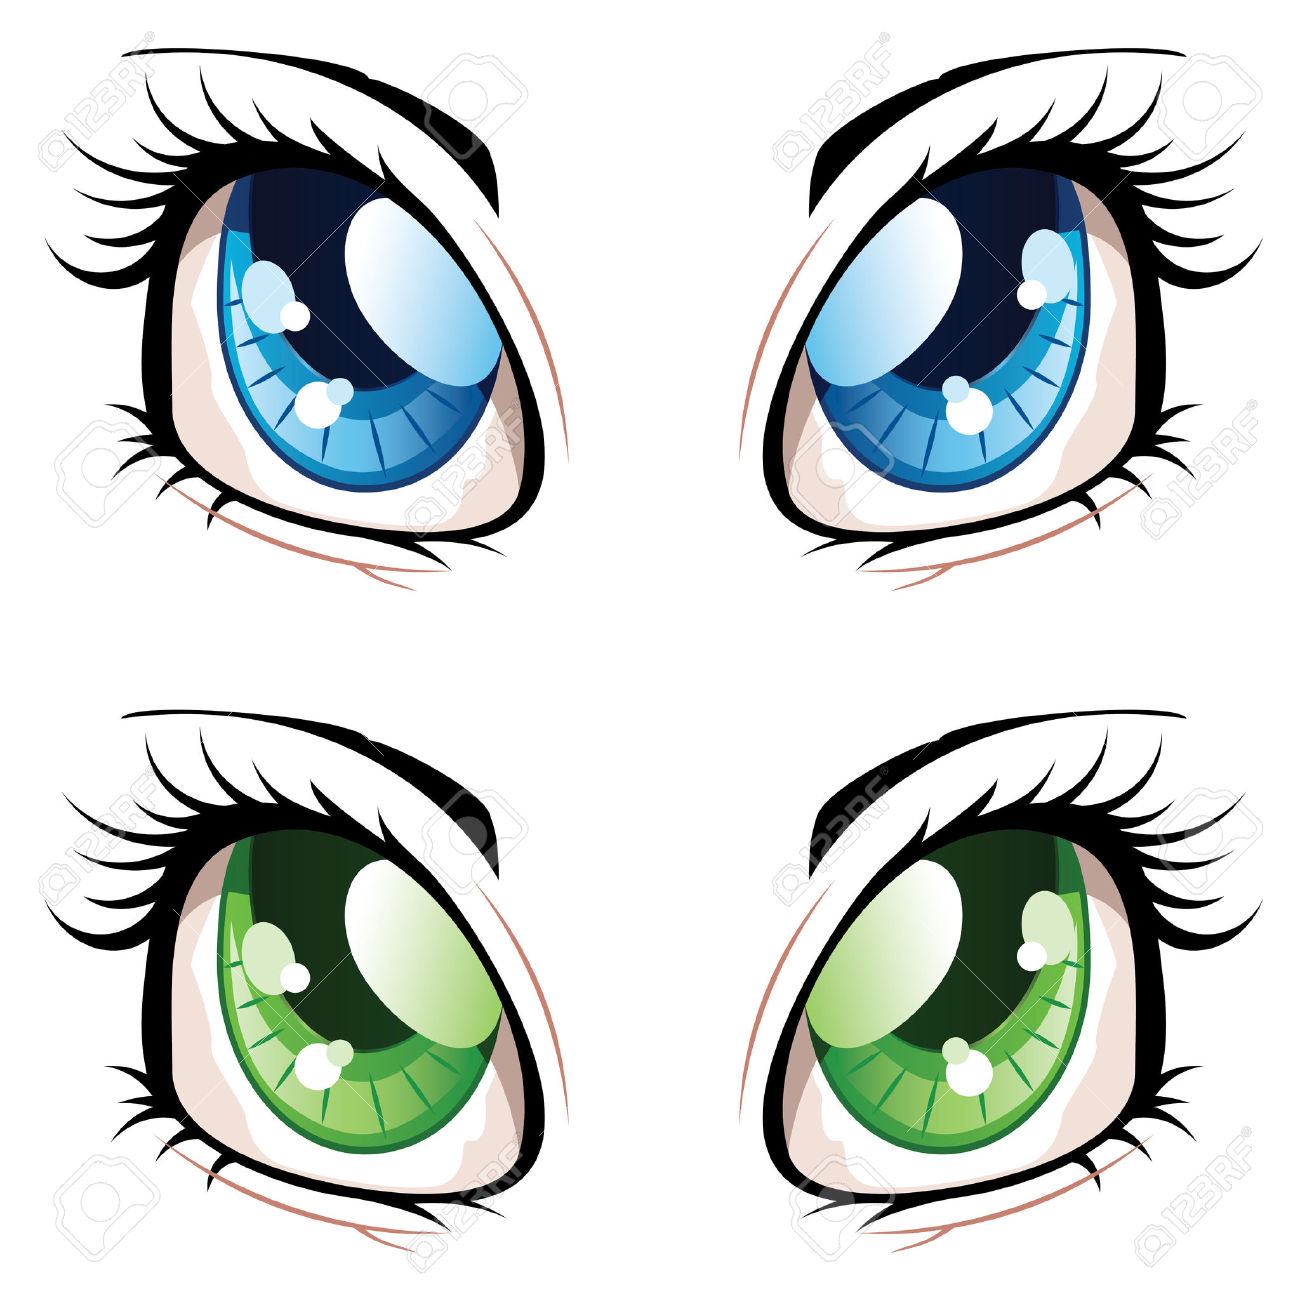 Set Of Manga, Anime Style Eyes Of Different Colors. Royalty Free.